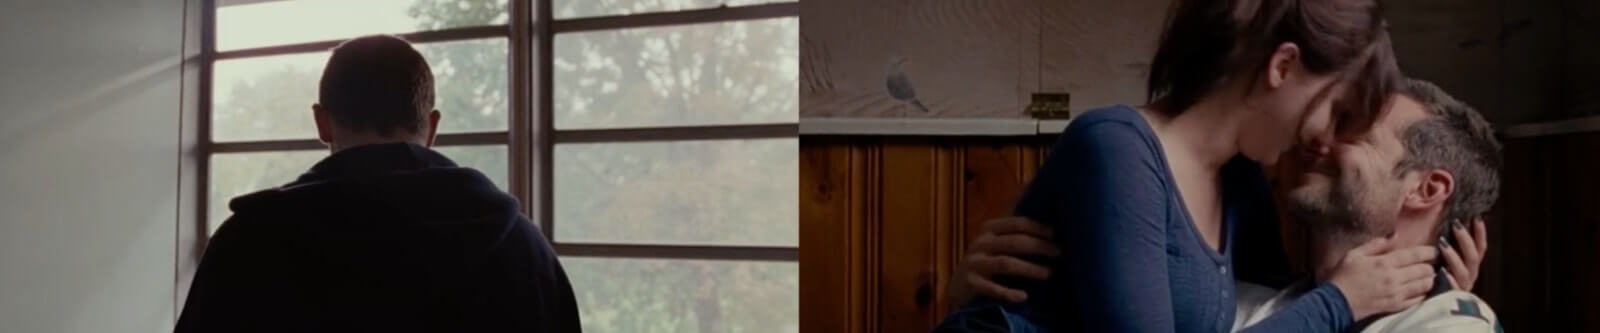 How To Create Striking First and Final Frames in Your Film - Silver Linings Playbook